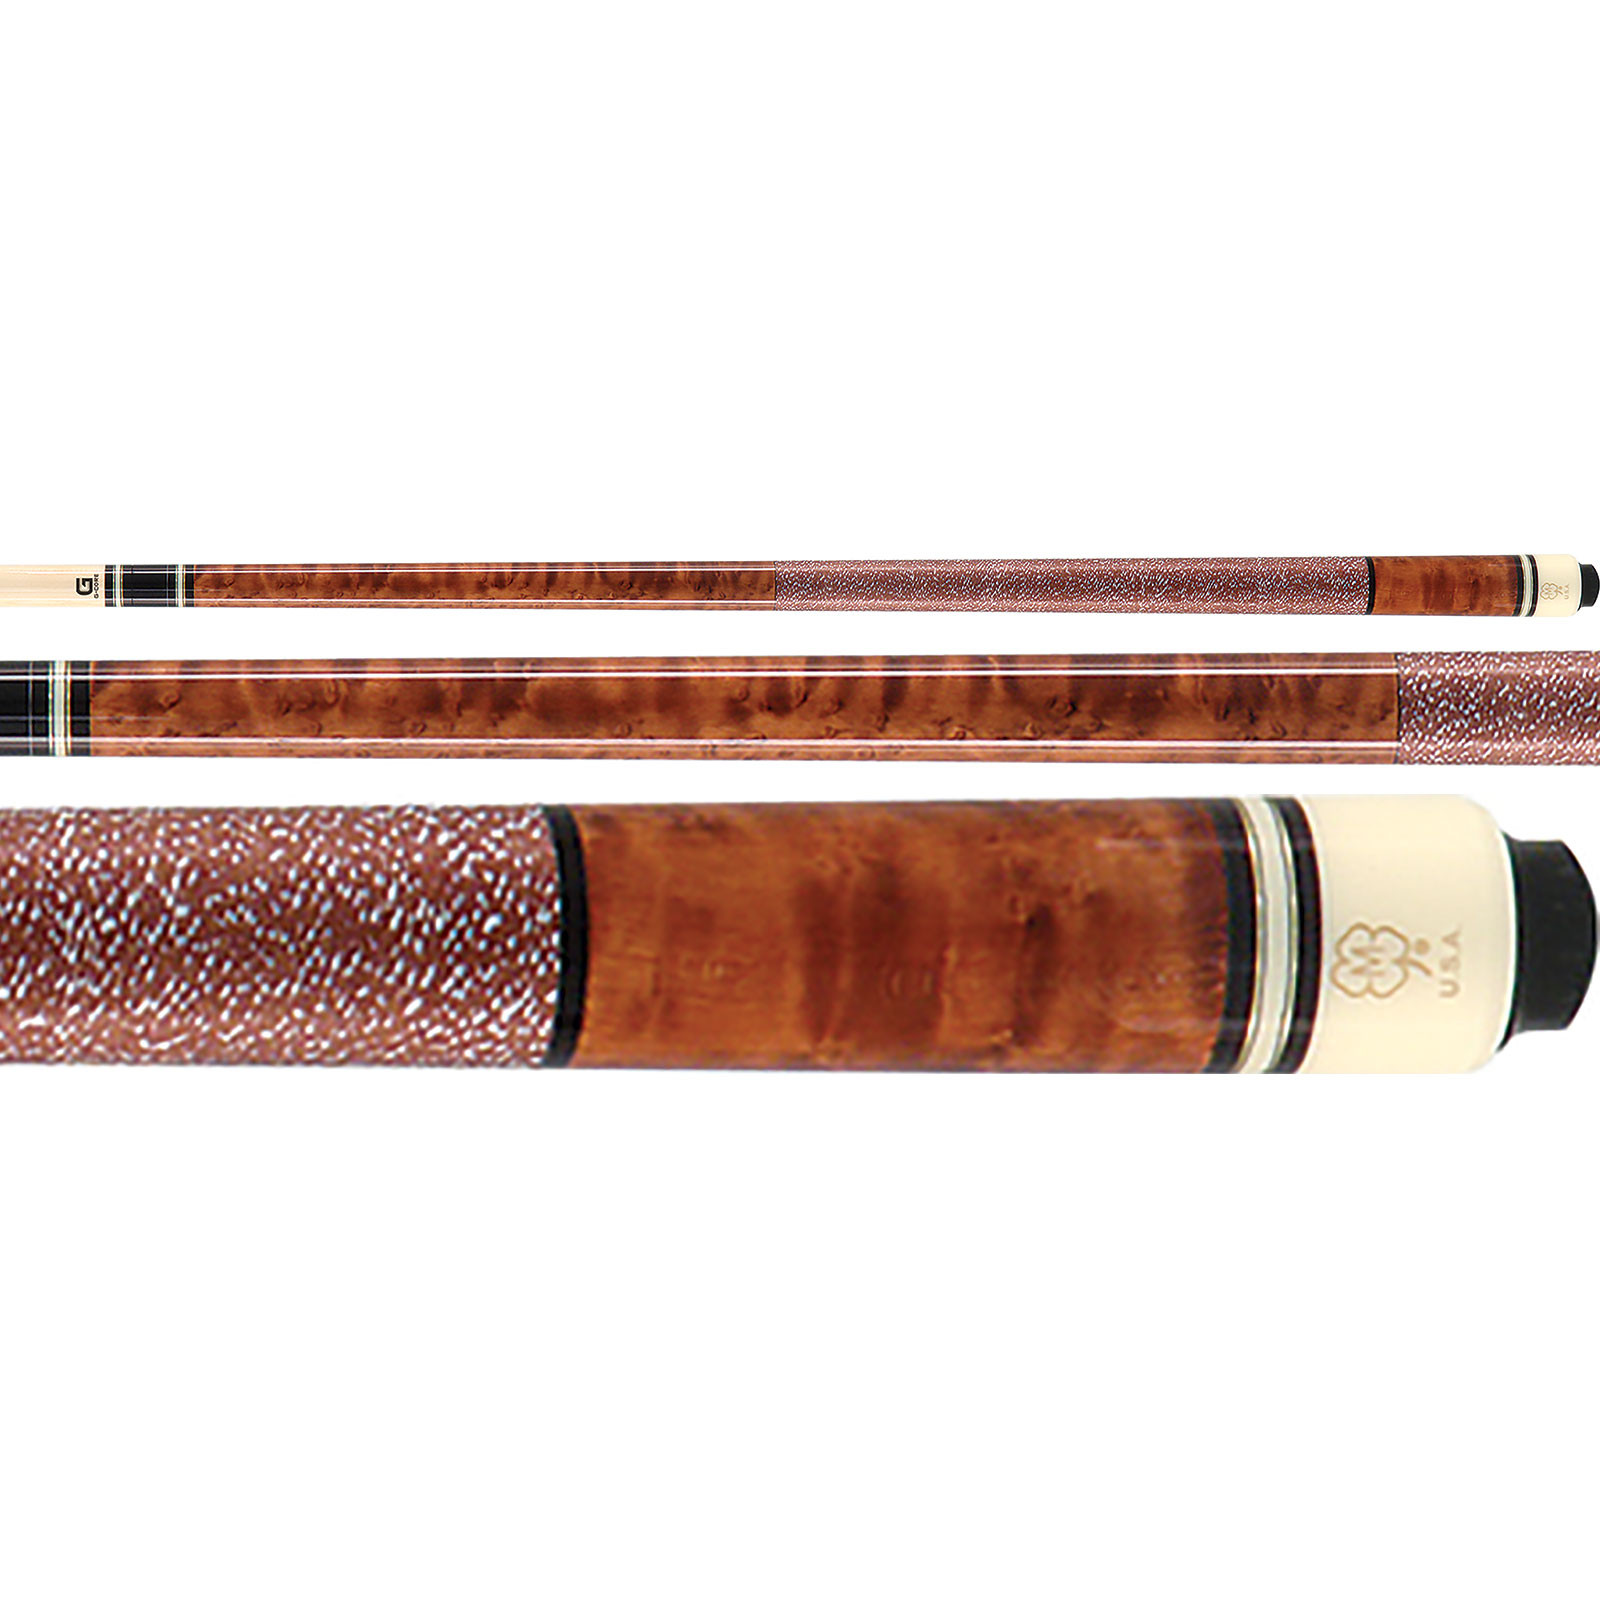 McDermott G204 Cherry Brown Pool Cue